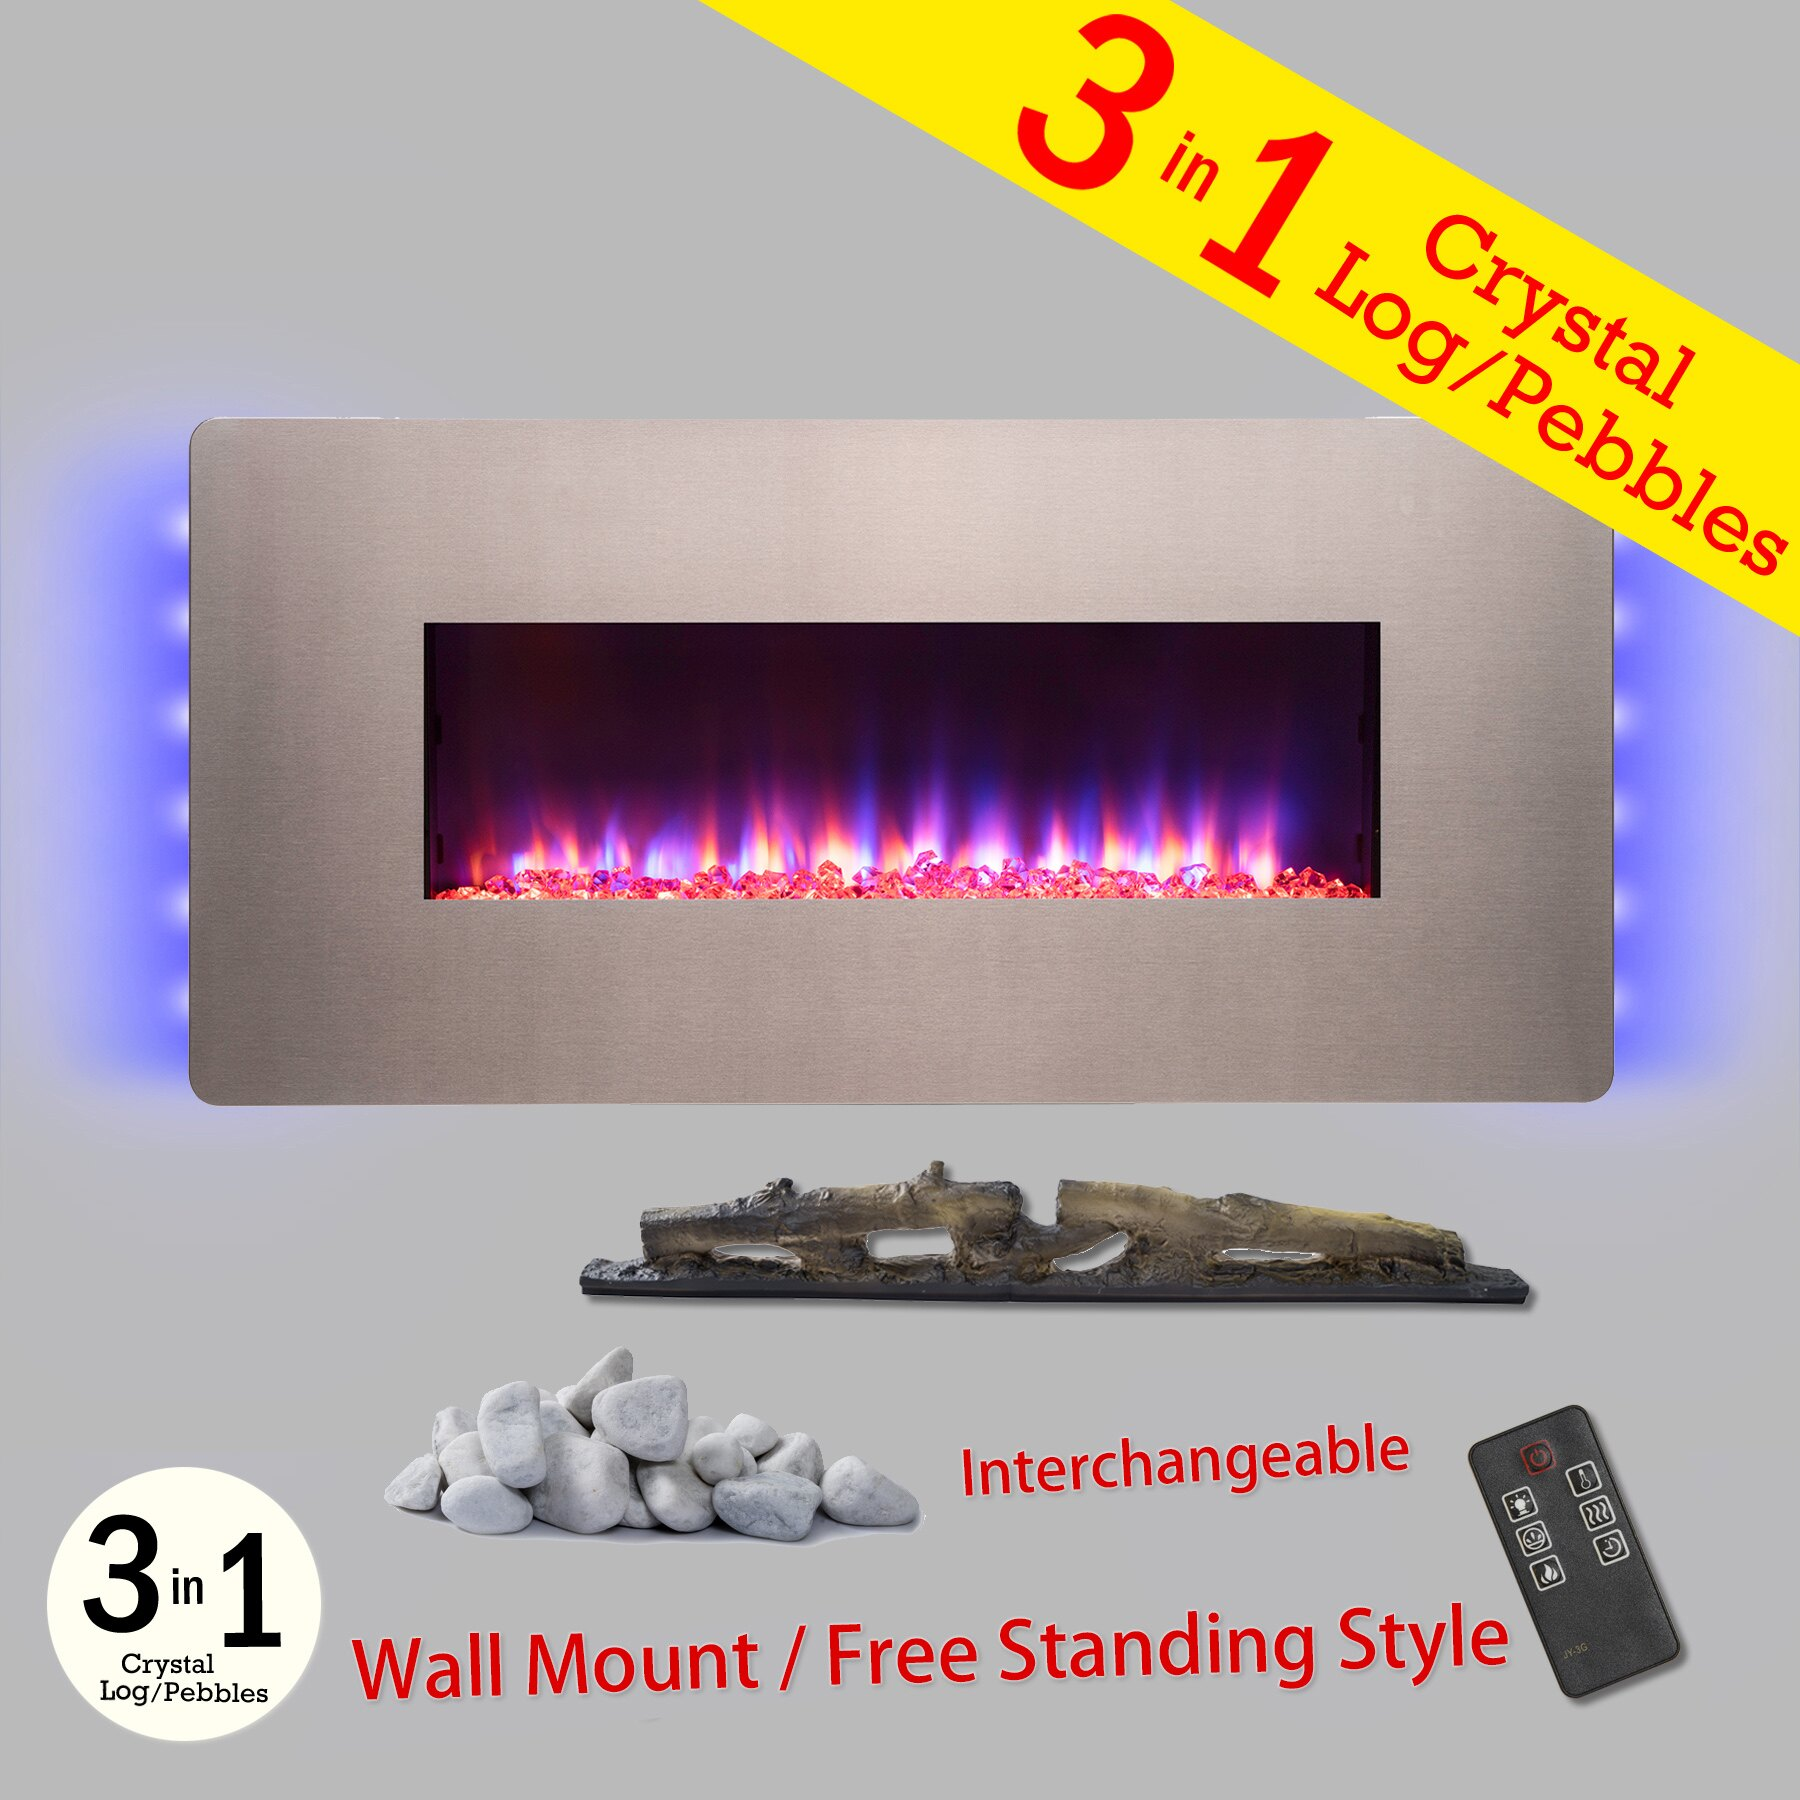 "AKDY 48"" Freestanding Wall Mount Interchangeable Adjustable Flame Electric Fireplace Heater Stove w/ Remote 0"